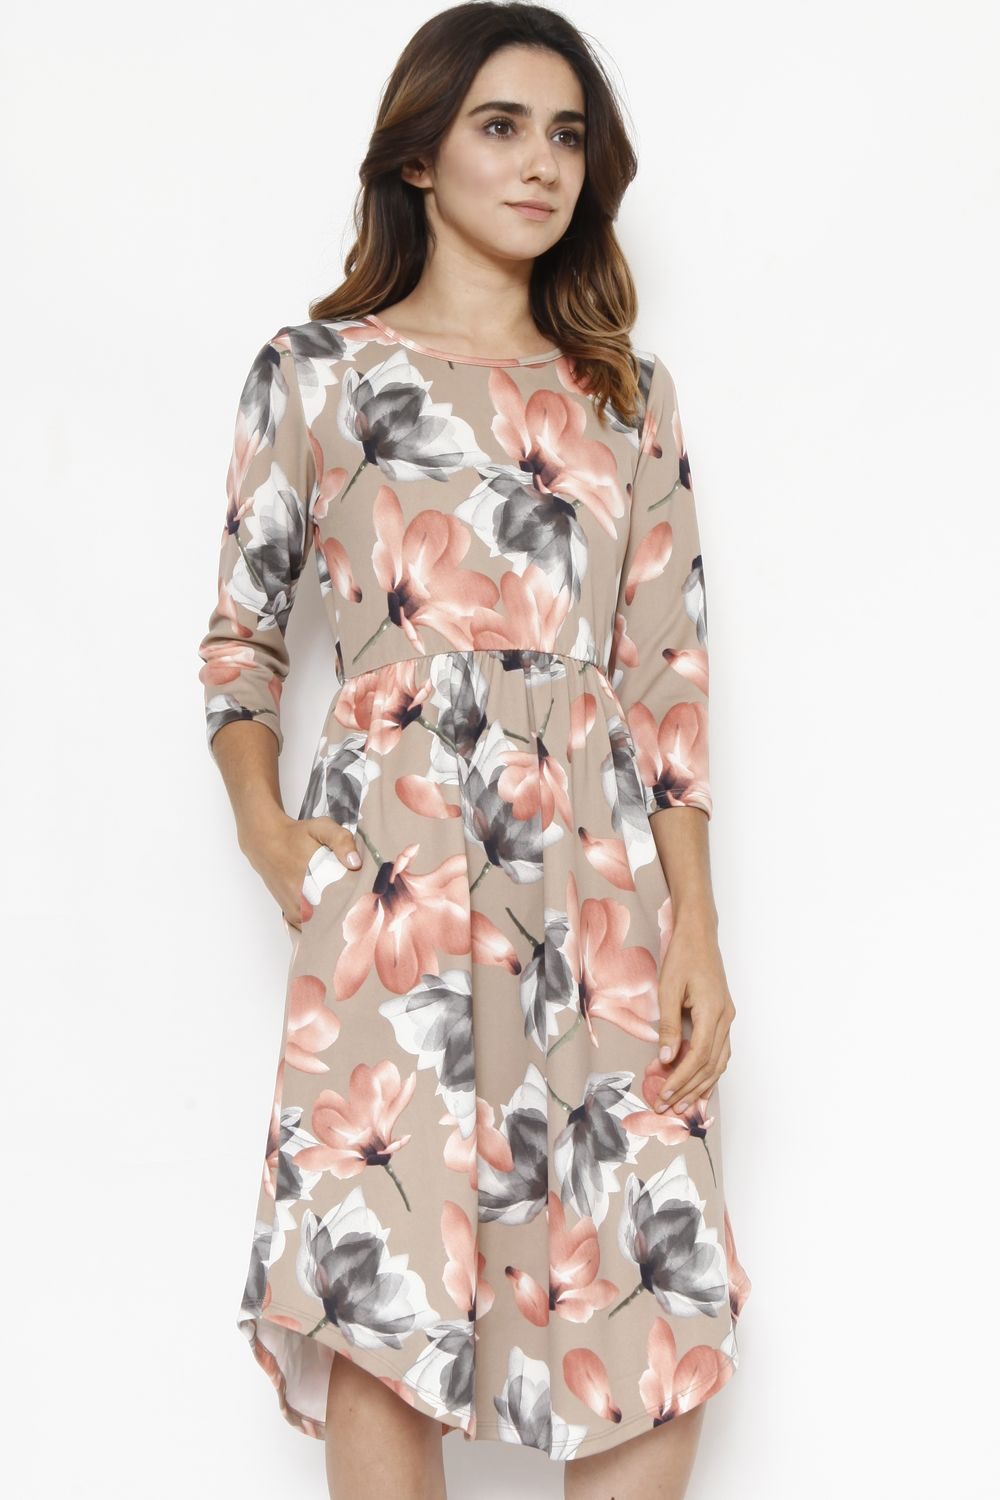 Beige & Coral Floral 3/4 Sleeve Midi Dress